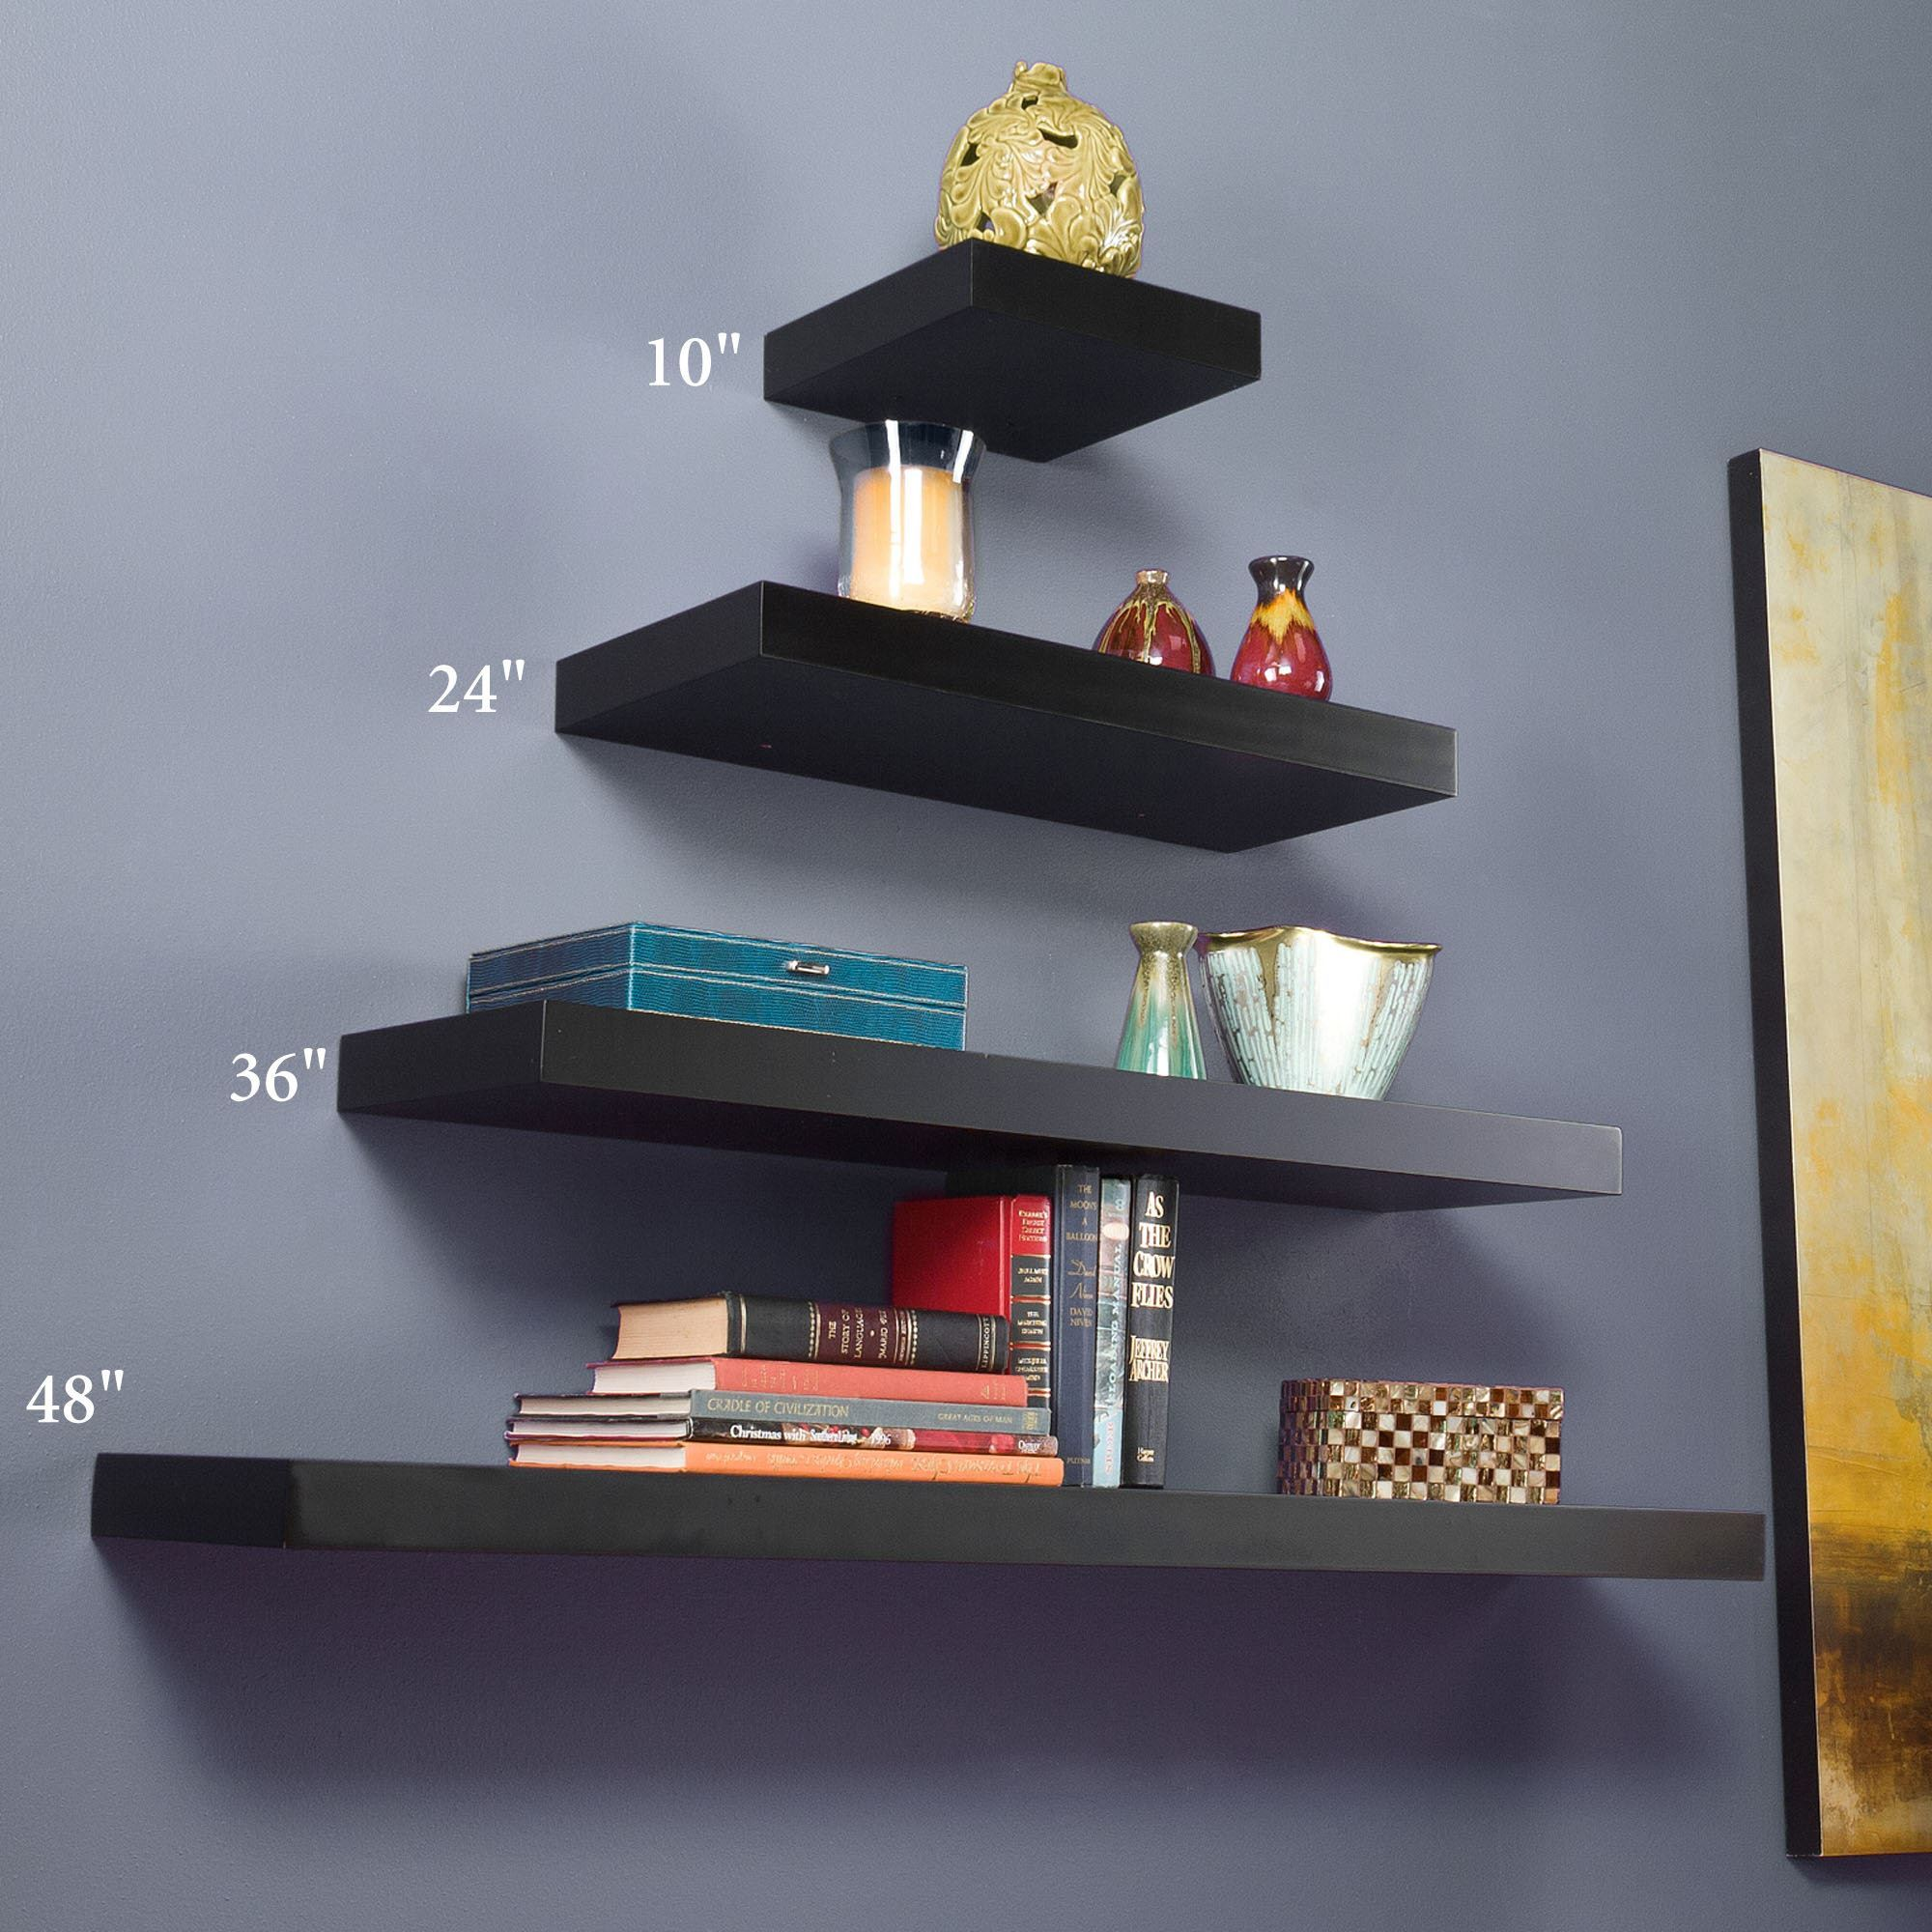 set for products pagoda lulukuku floating decal shelfs shelf chinoiserie shelves